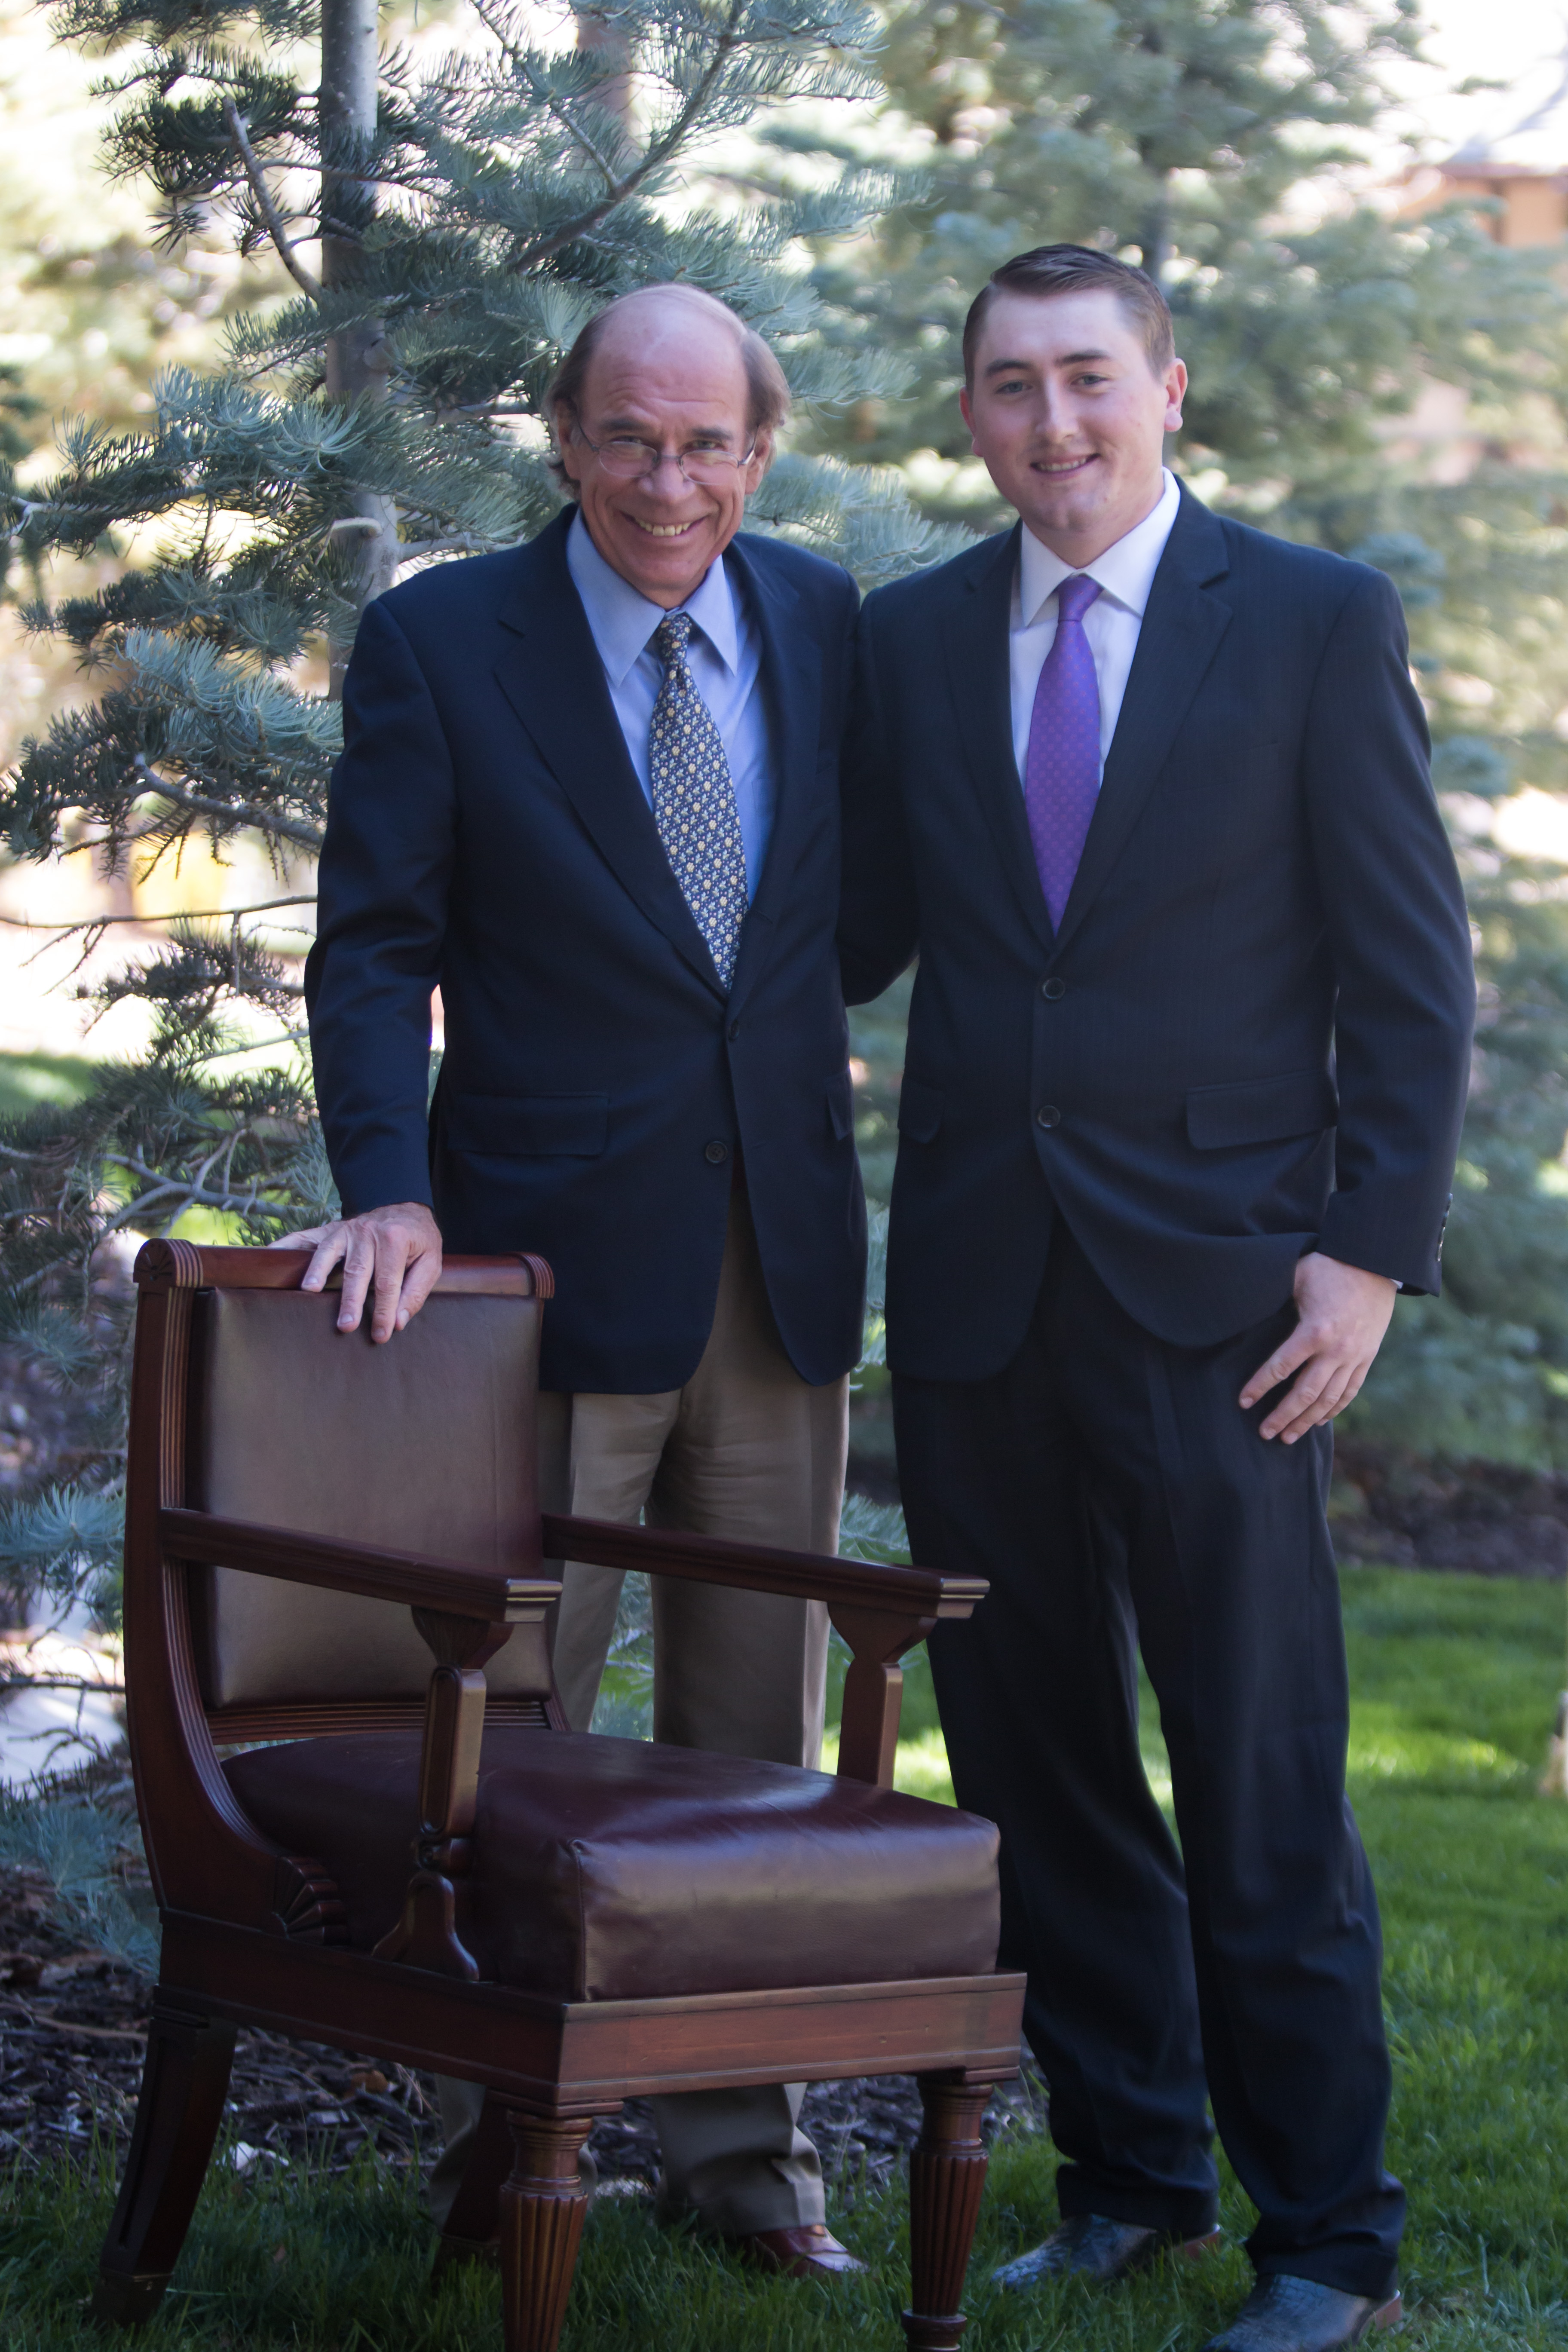 Doug Bennett and Clay Crozier with Senator Wallace F. Bennett's chair, date and location not given | Photo courtesy of Southern Utah University, St. George News / Cedar City News